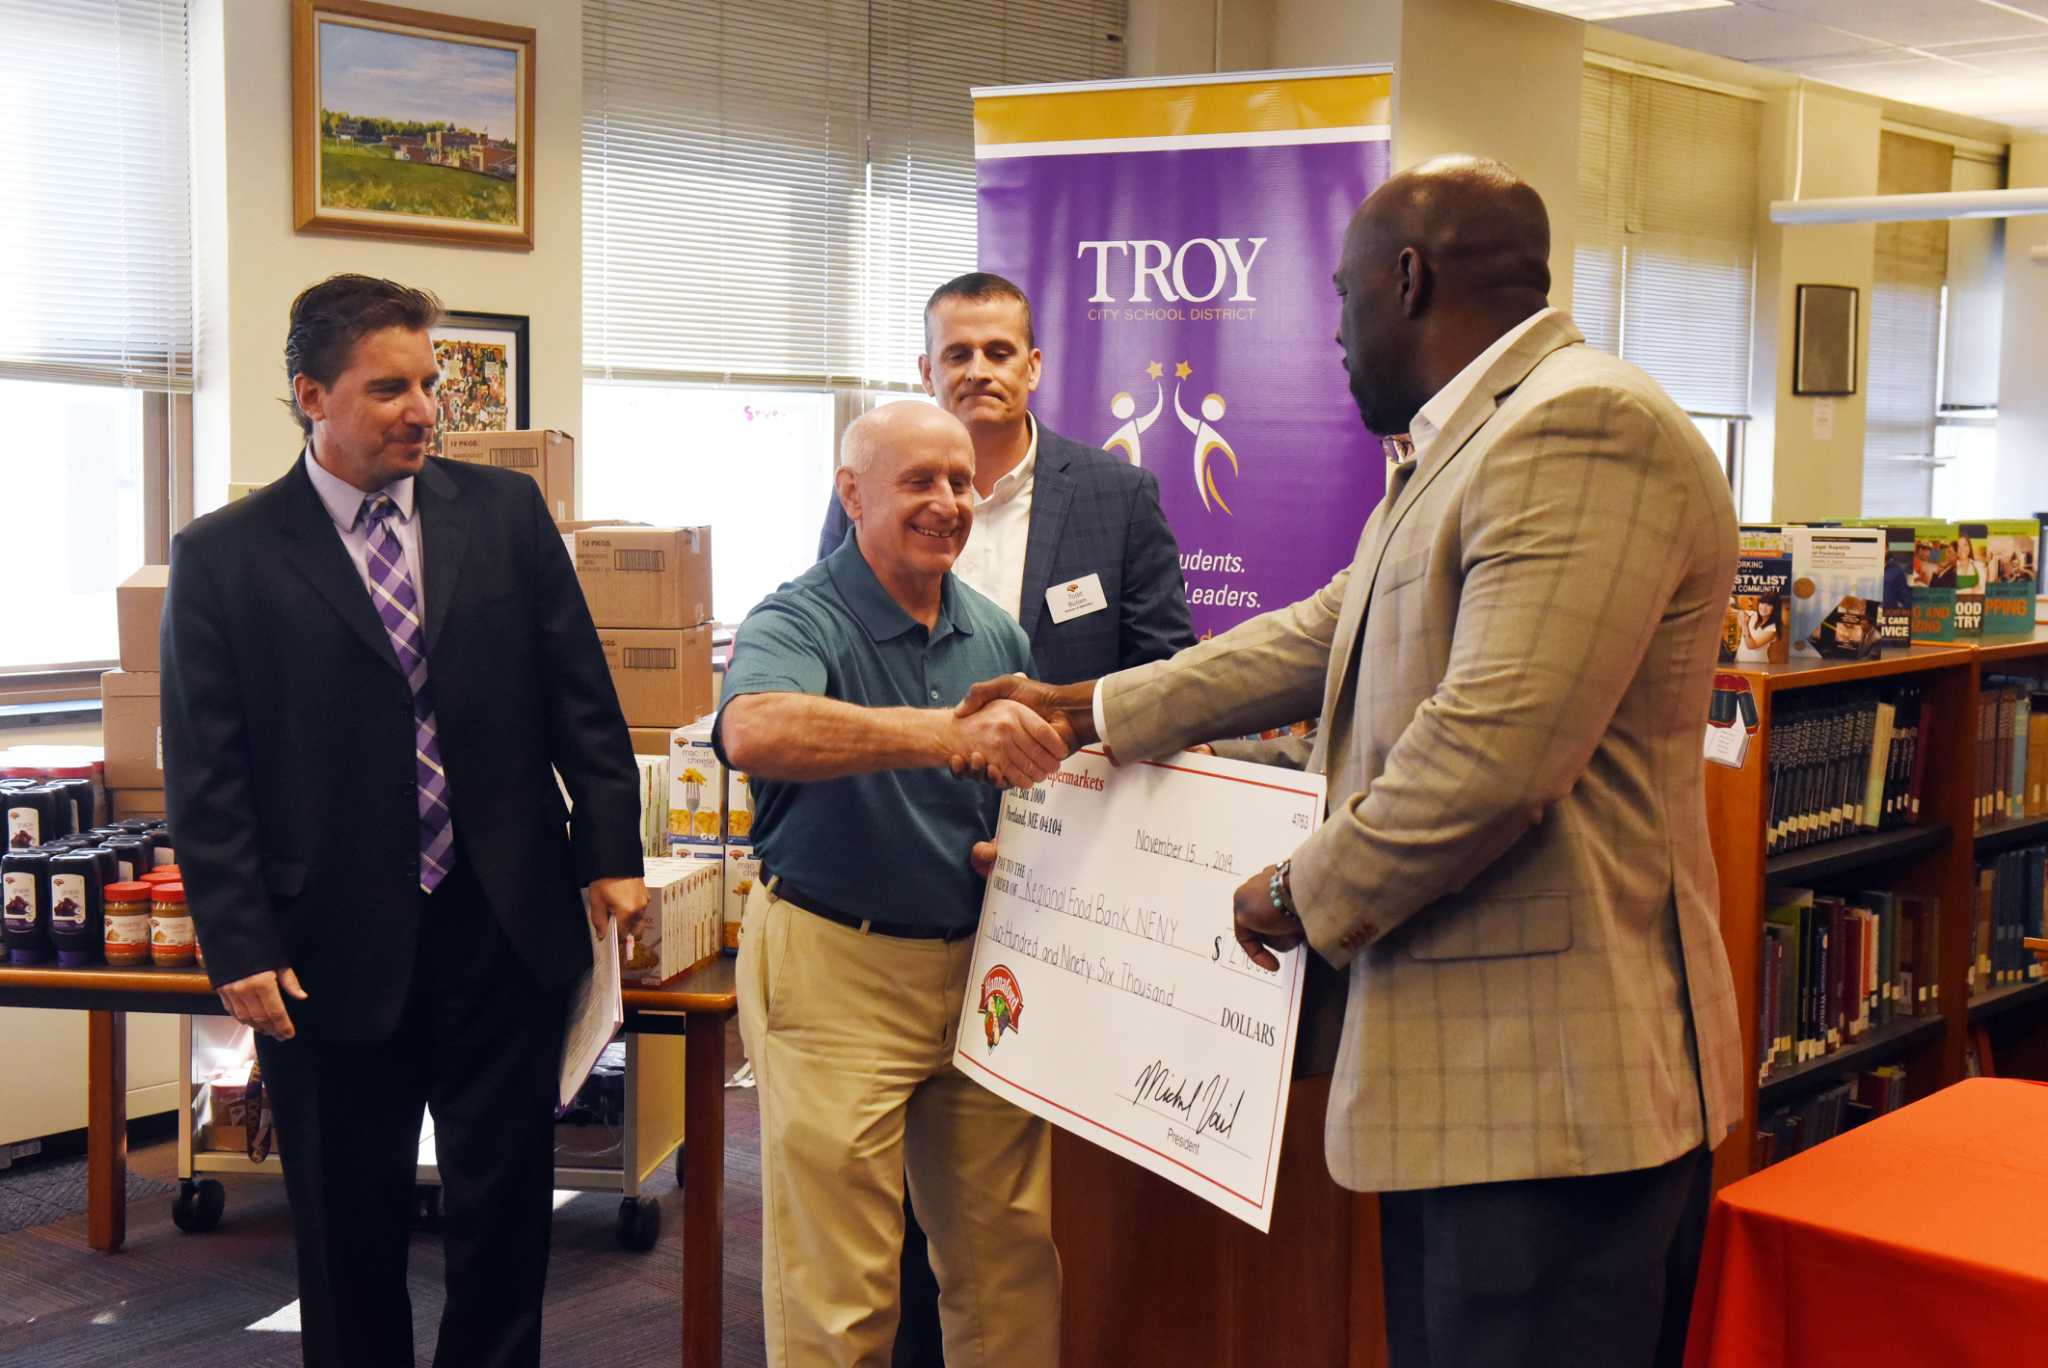 Troy High School pantry to provide students with weekend meals